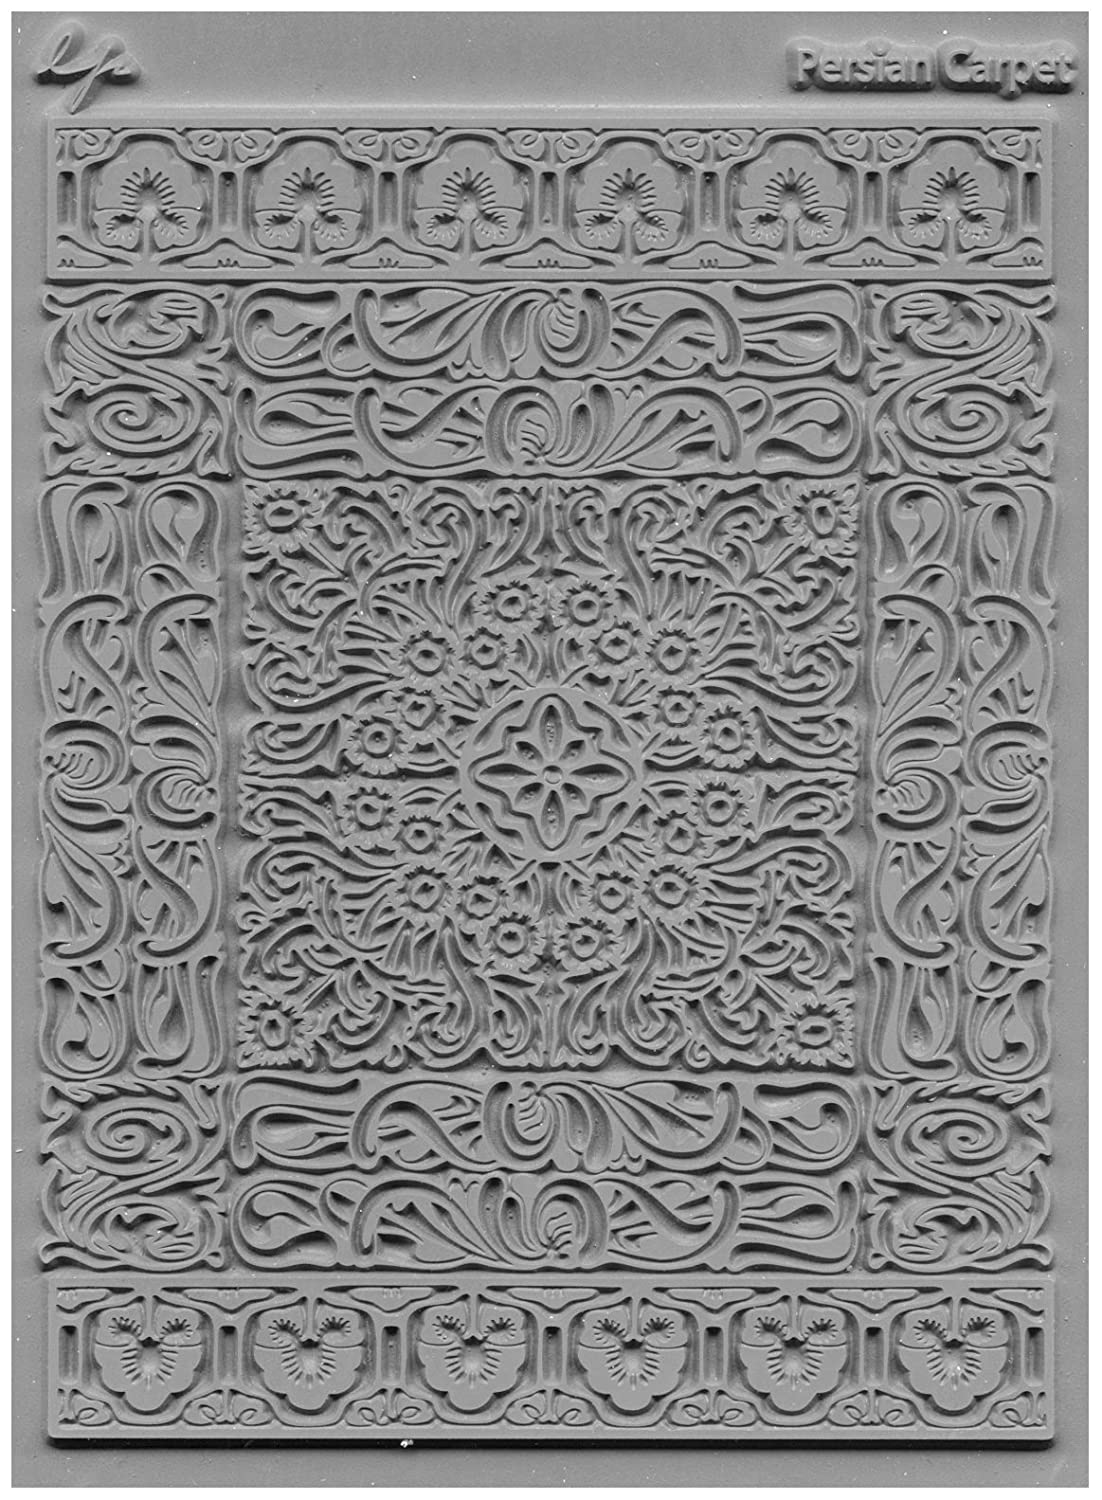 Lisa Pavelka 527045 Texture Stamp Persian Carpet JHB International